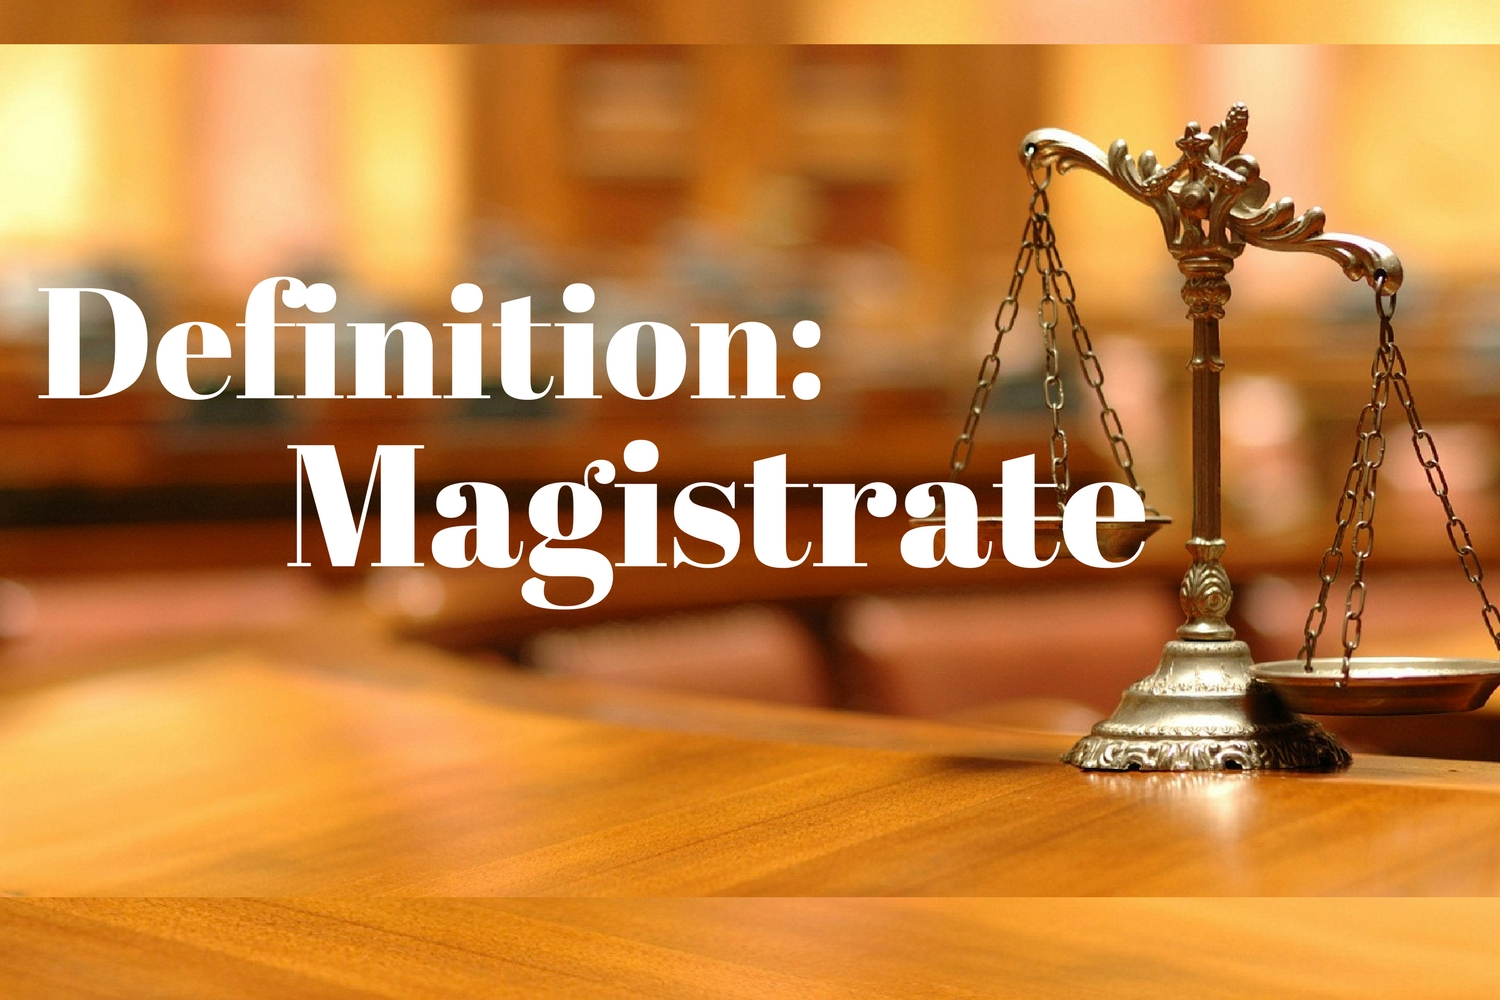 Definition: Magistrate